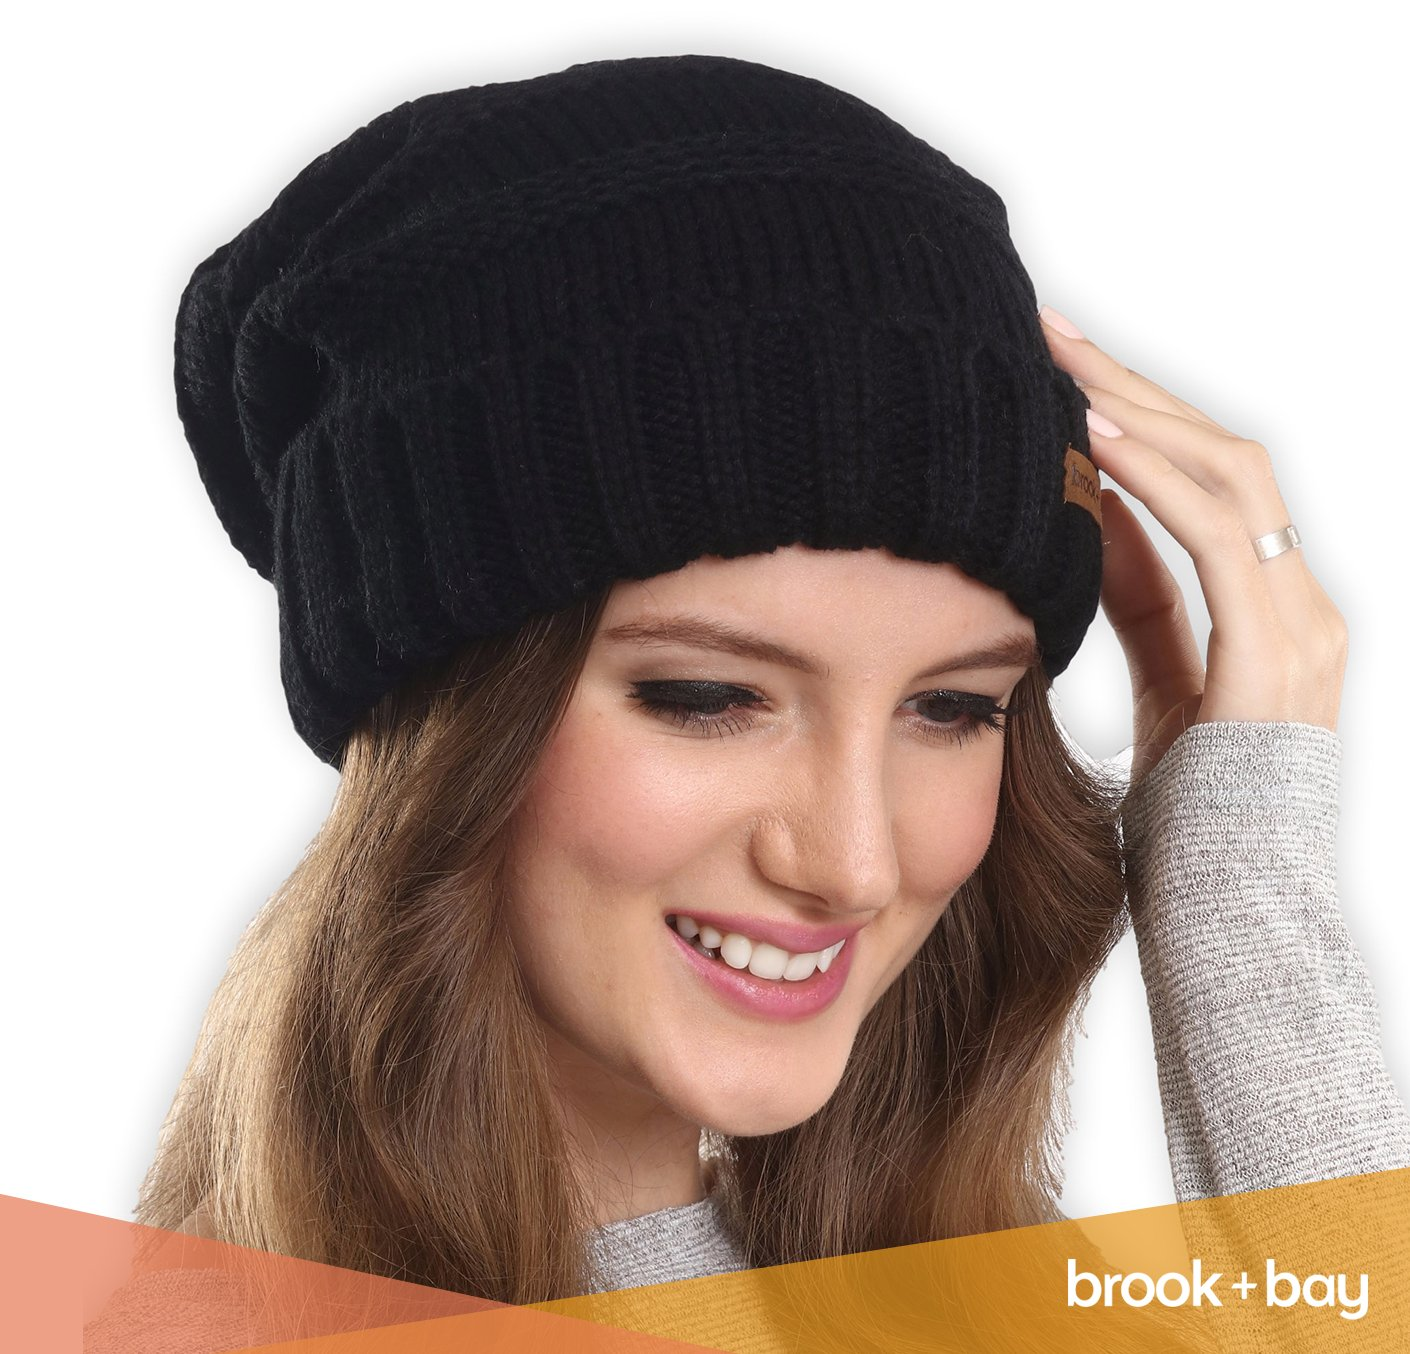 34059d1e6cd Brook + Bay Slouchy Cable Knit Cuff Beanie - Stay Warm Stylish - Chunky